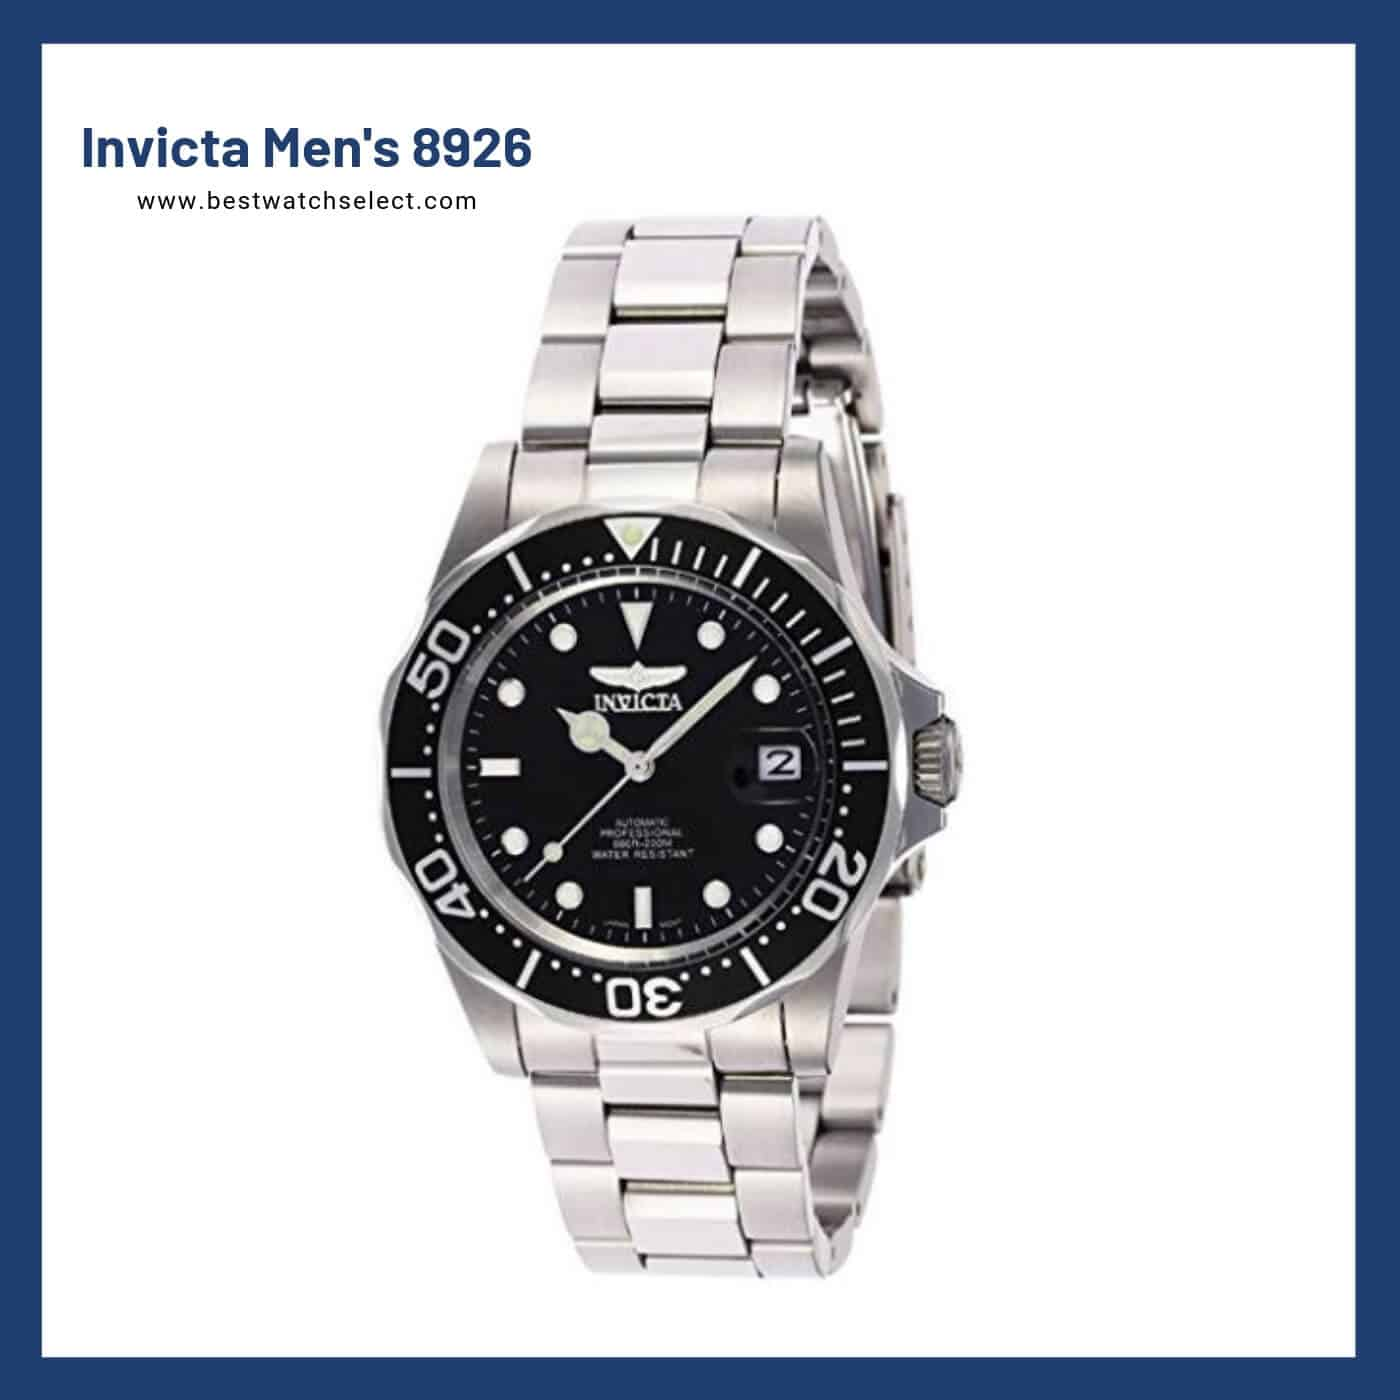 Invicta 8926 Review